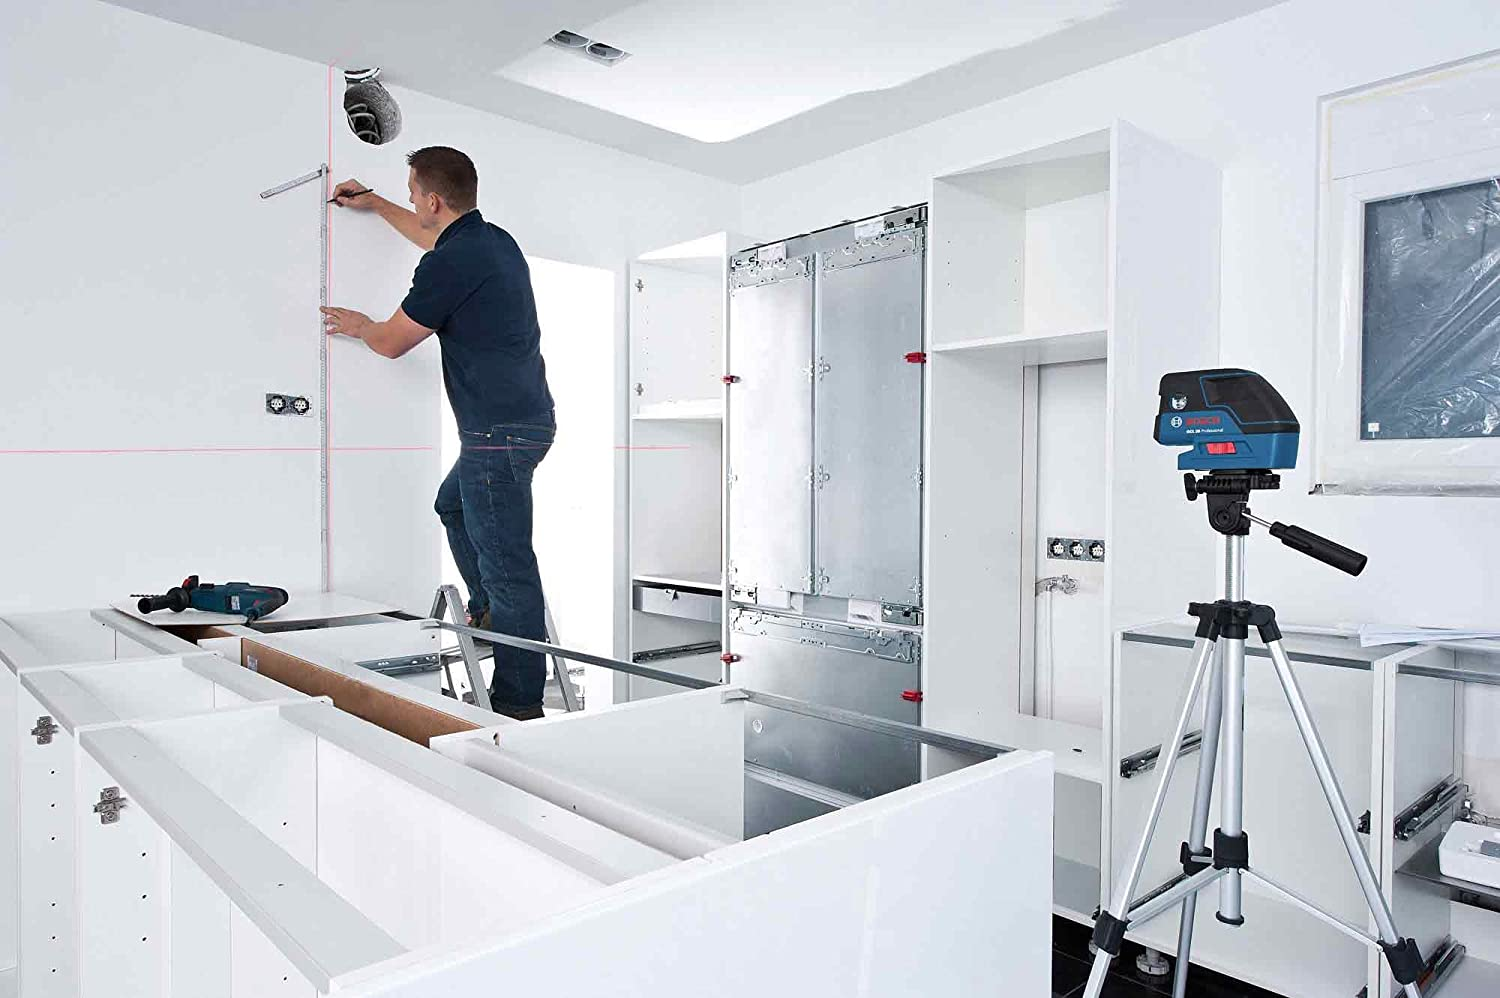 Bosch Self Leveling 5-Point Alignment Laser with Cross-Line GCL25